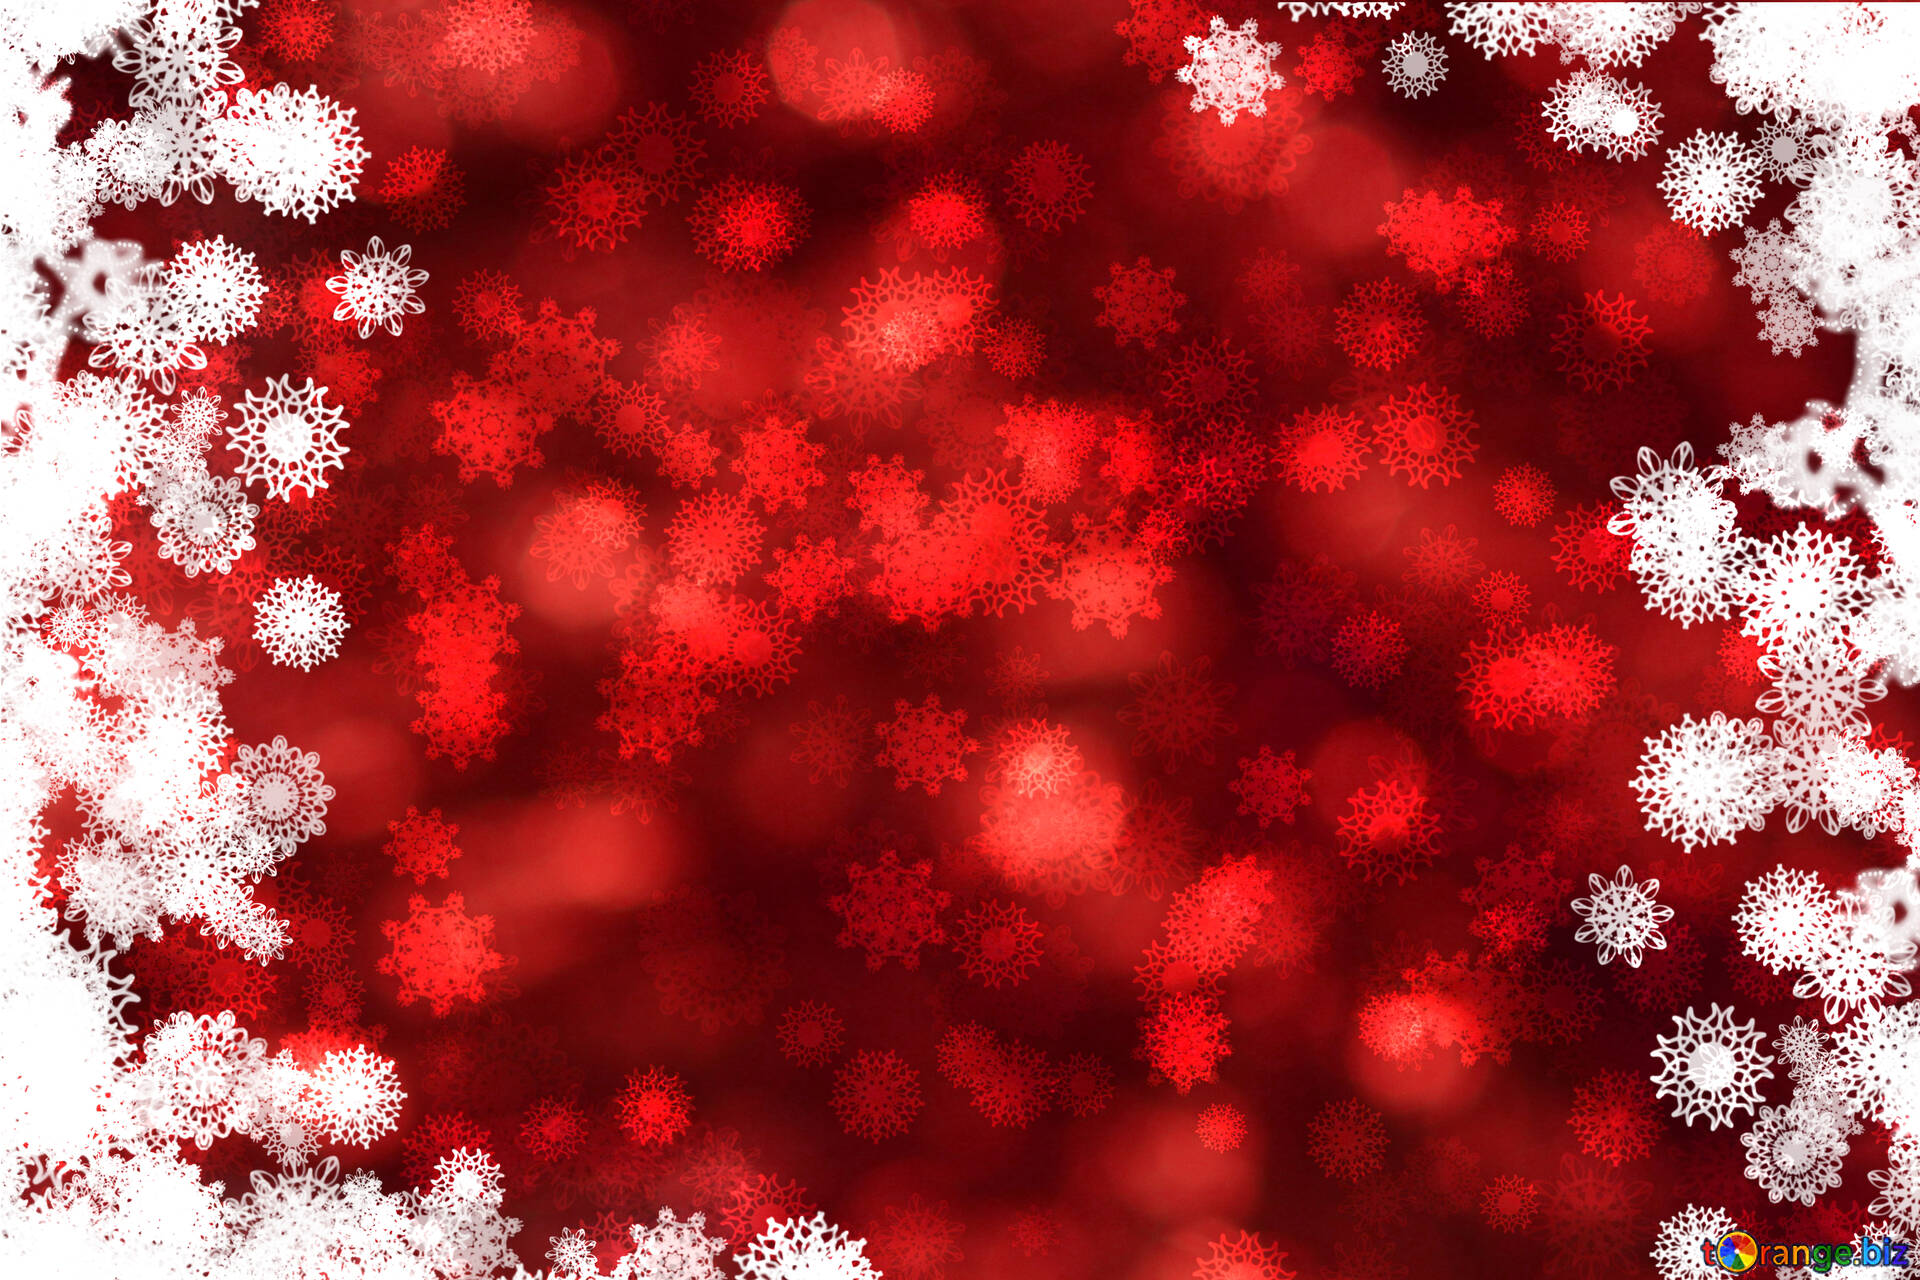 download free image red christmas background in hd wallpaper size 1920px - Red Christmas Background